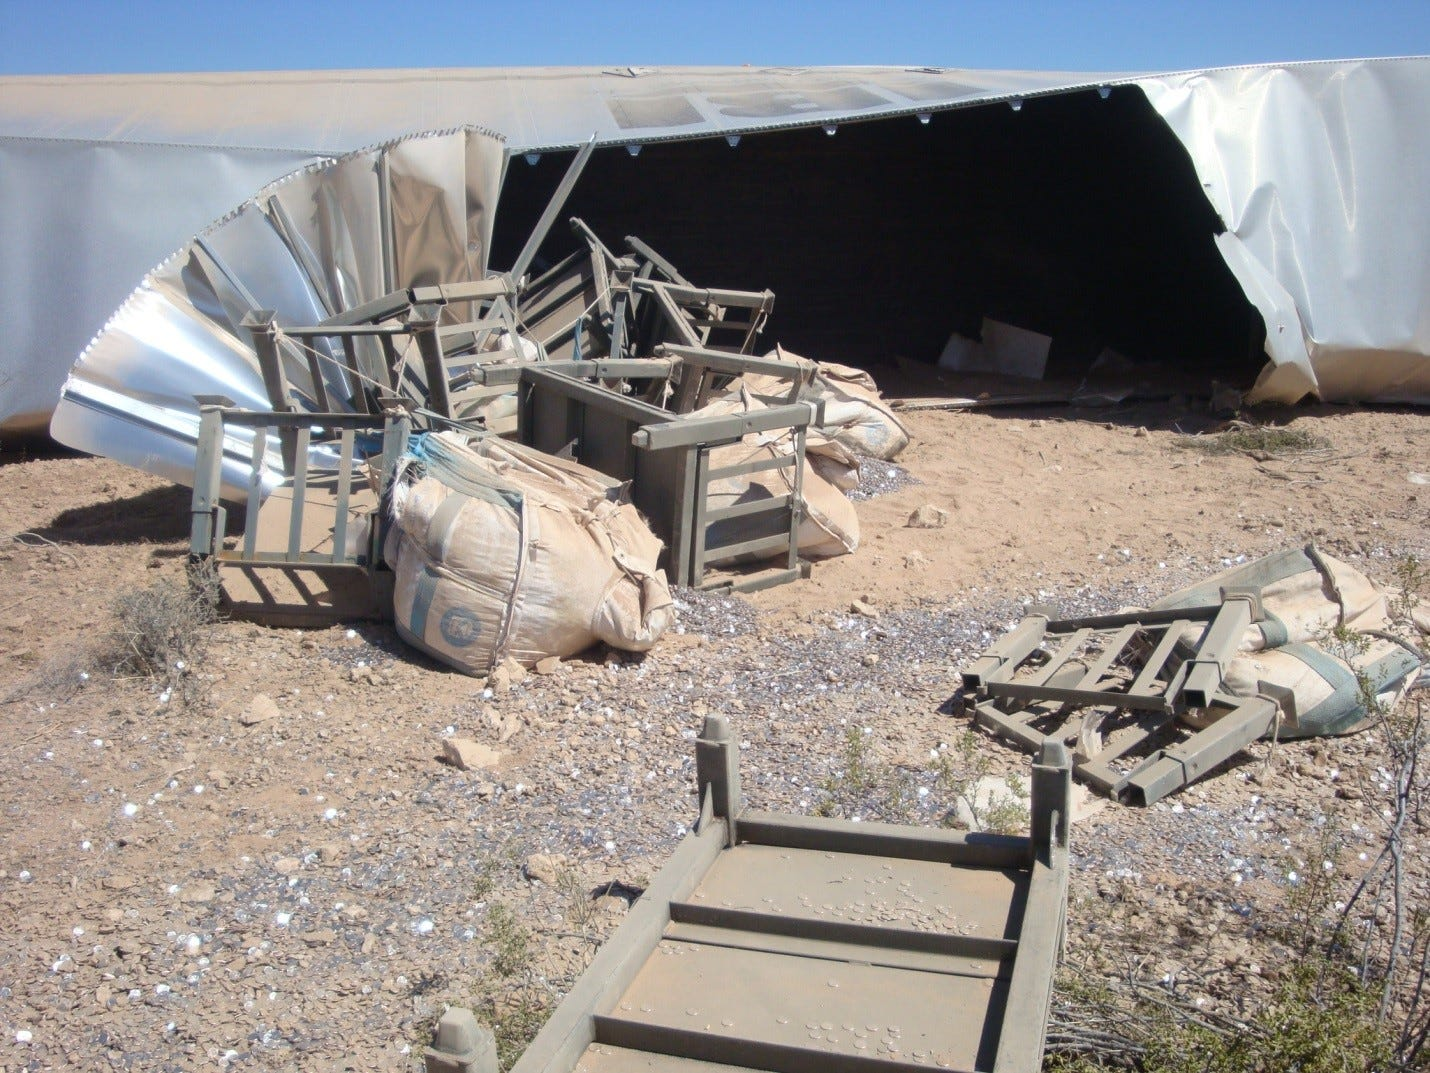 Overturned semi spills 8 million dimes on I-15 in Nevada